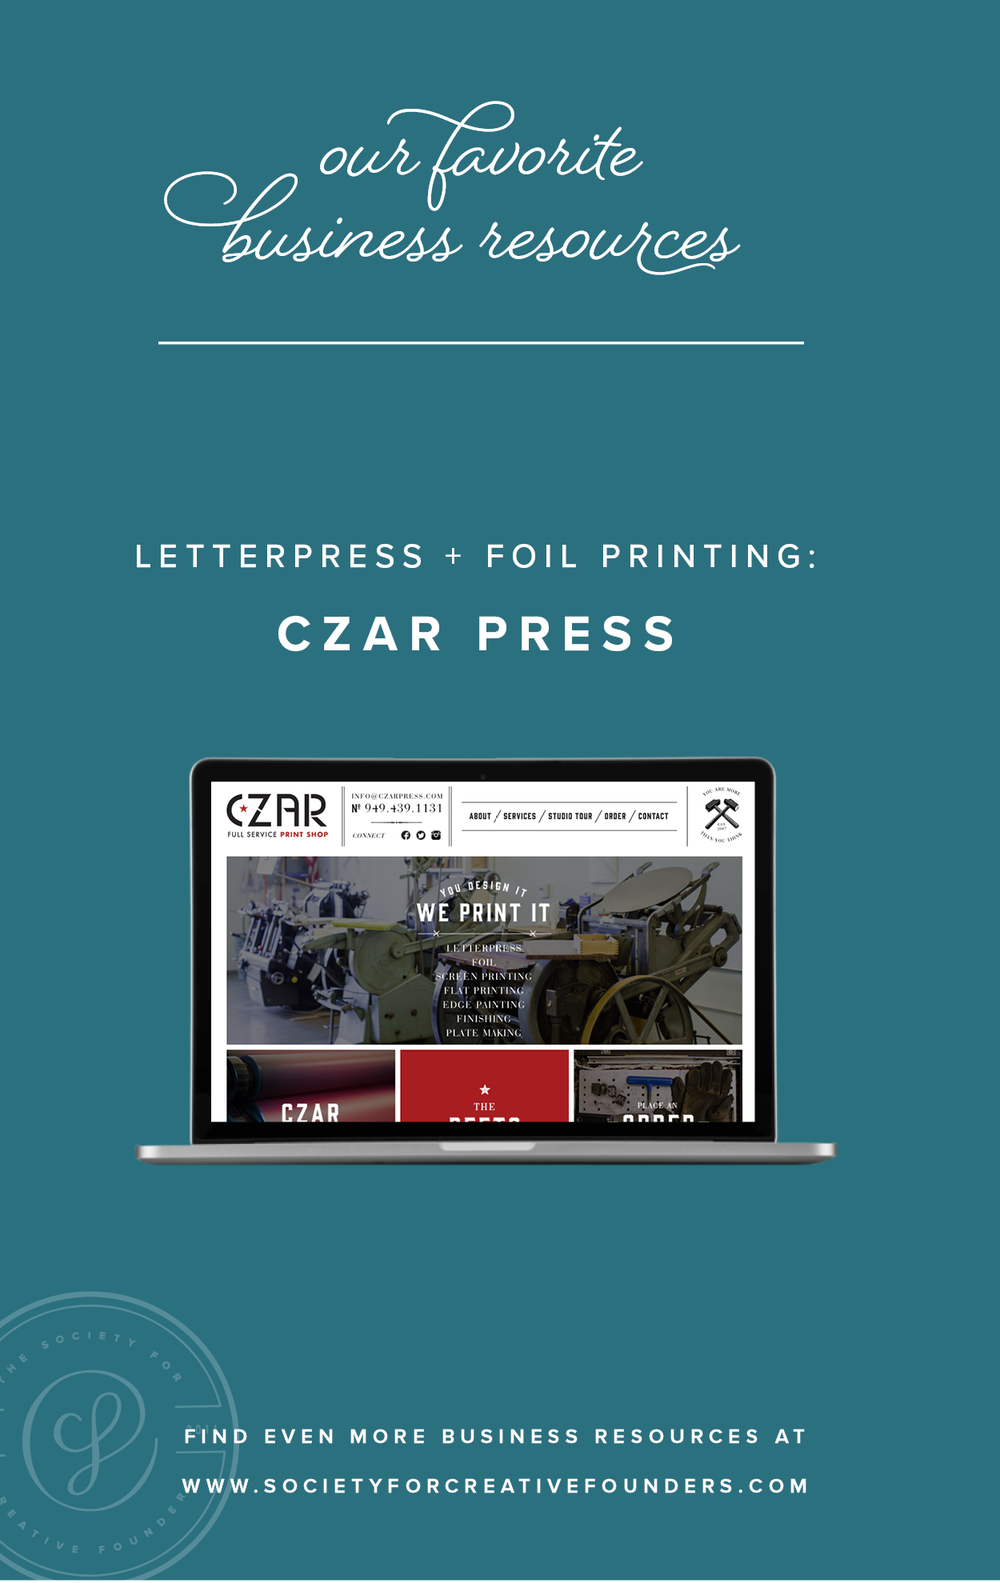 Czar Press - Favorite Business Resources from Society for Creative Founders